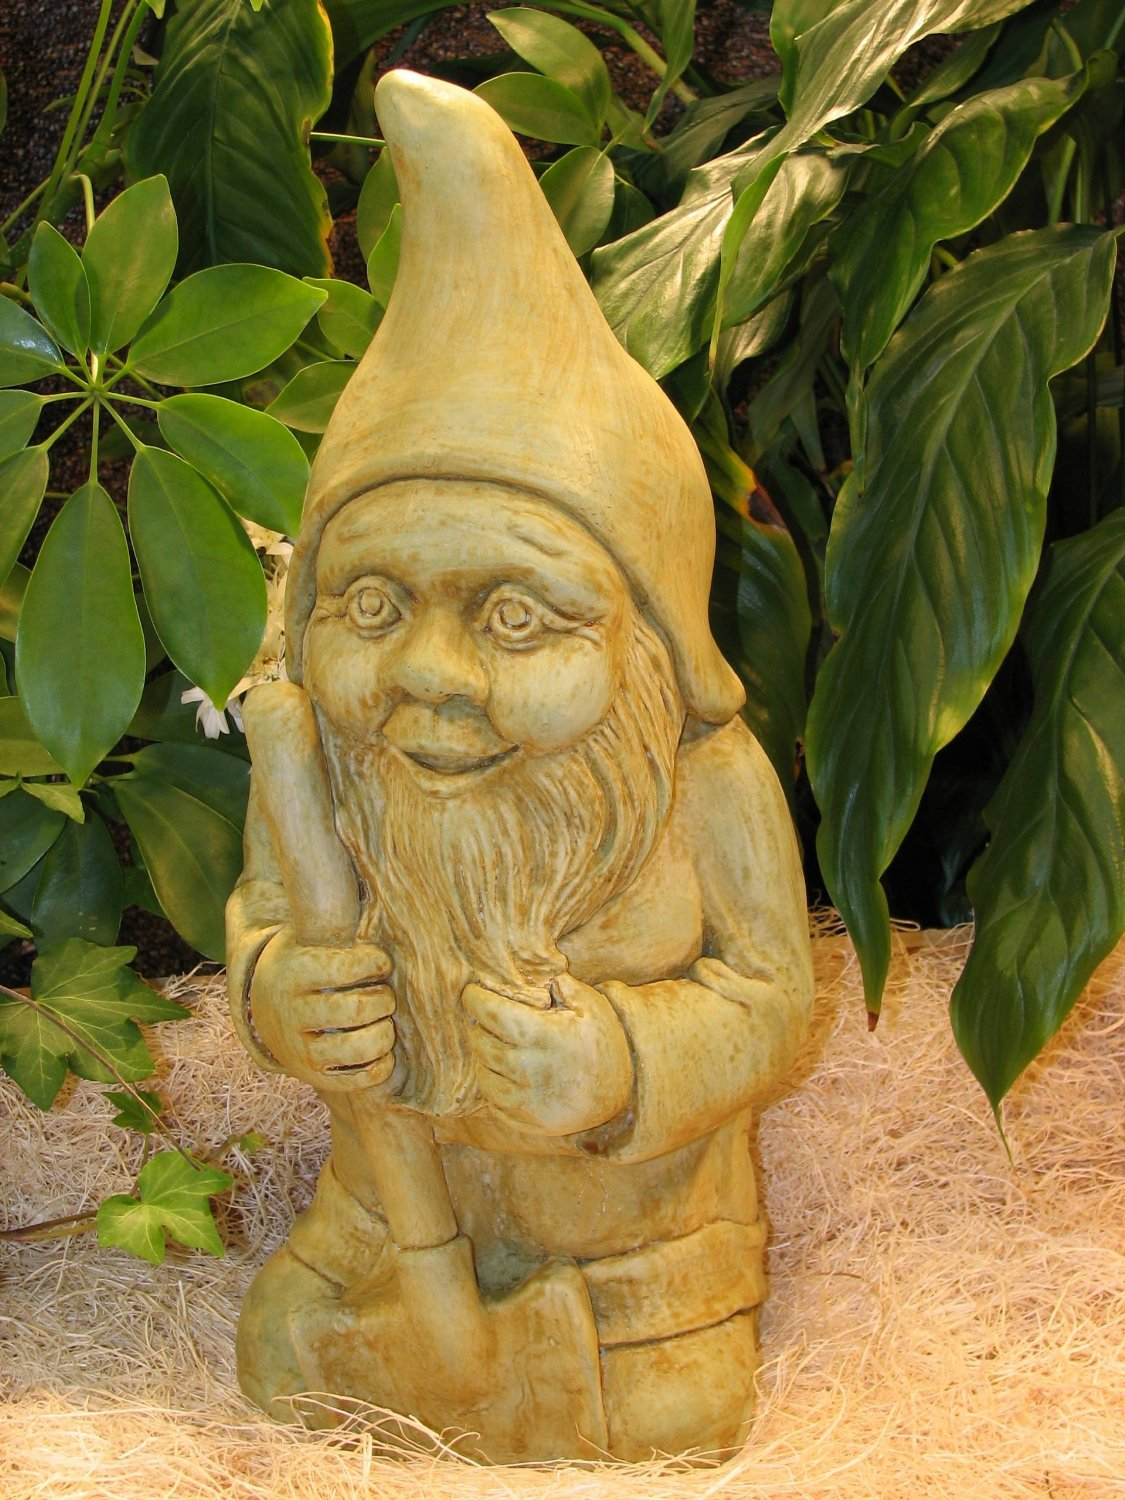 "GNOME GARDENING 16"" CEMENT STATUE Sculpture GREEN-BROWN STAIN CONCRETE Natural Color OUTDOOR GARDEN"